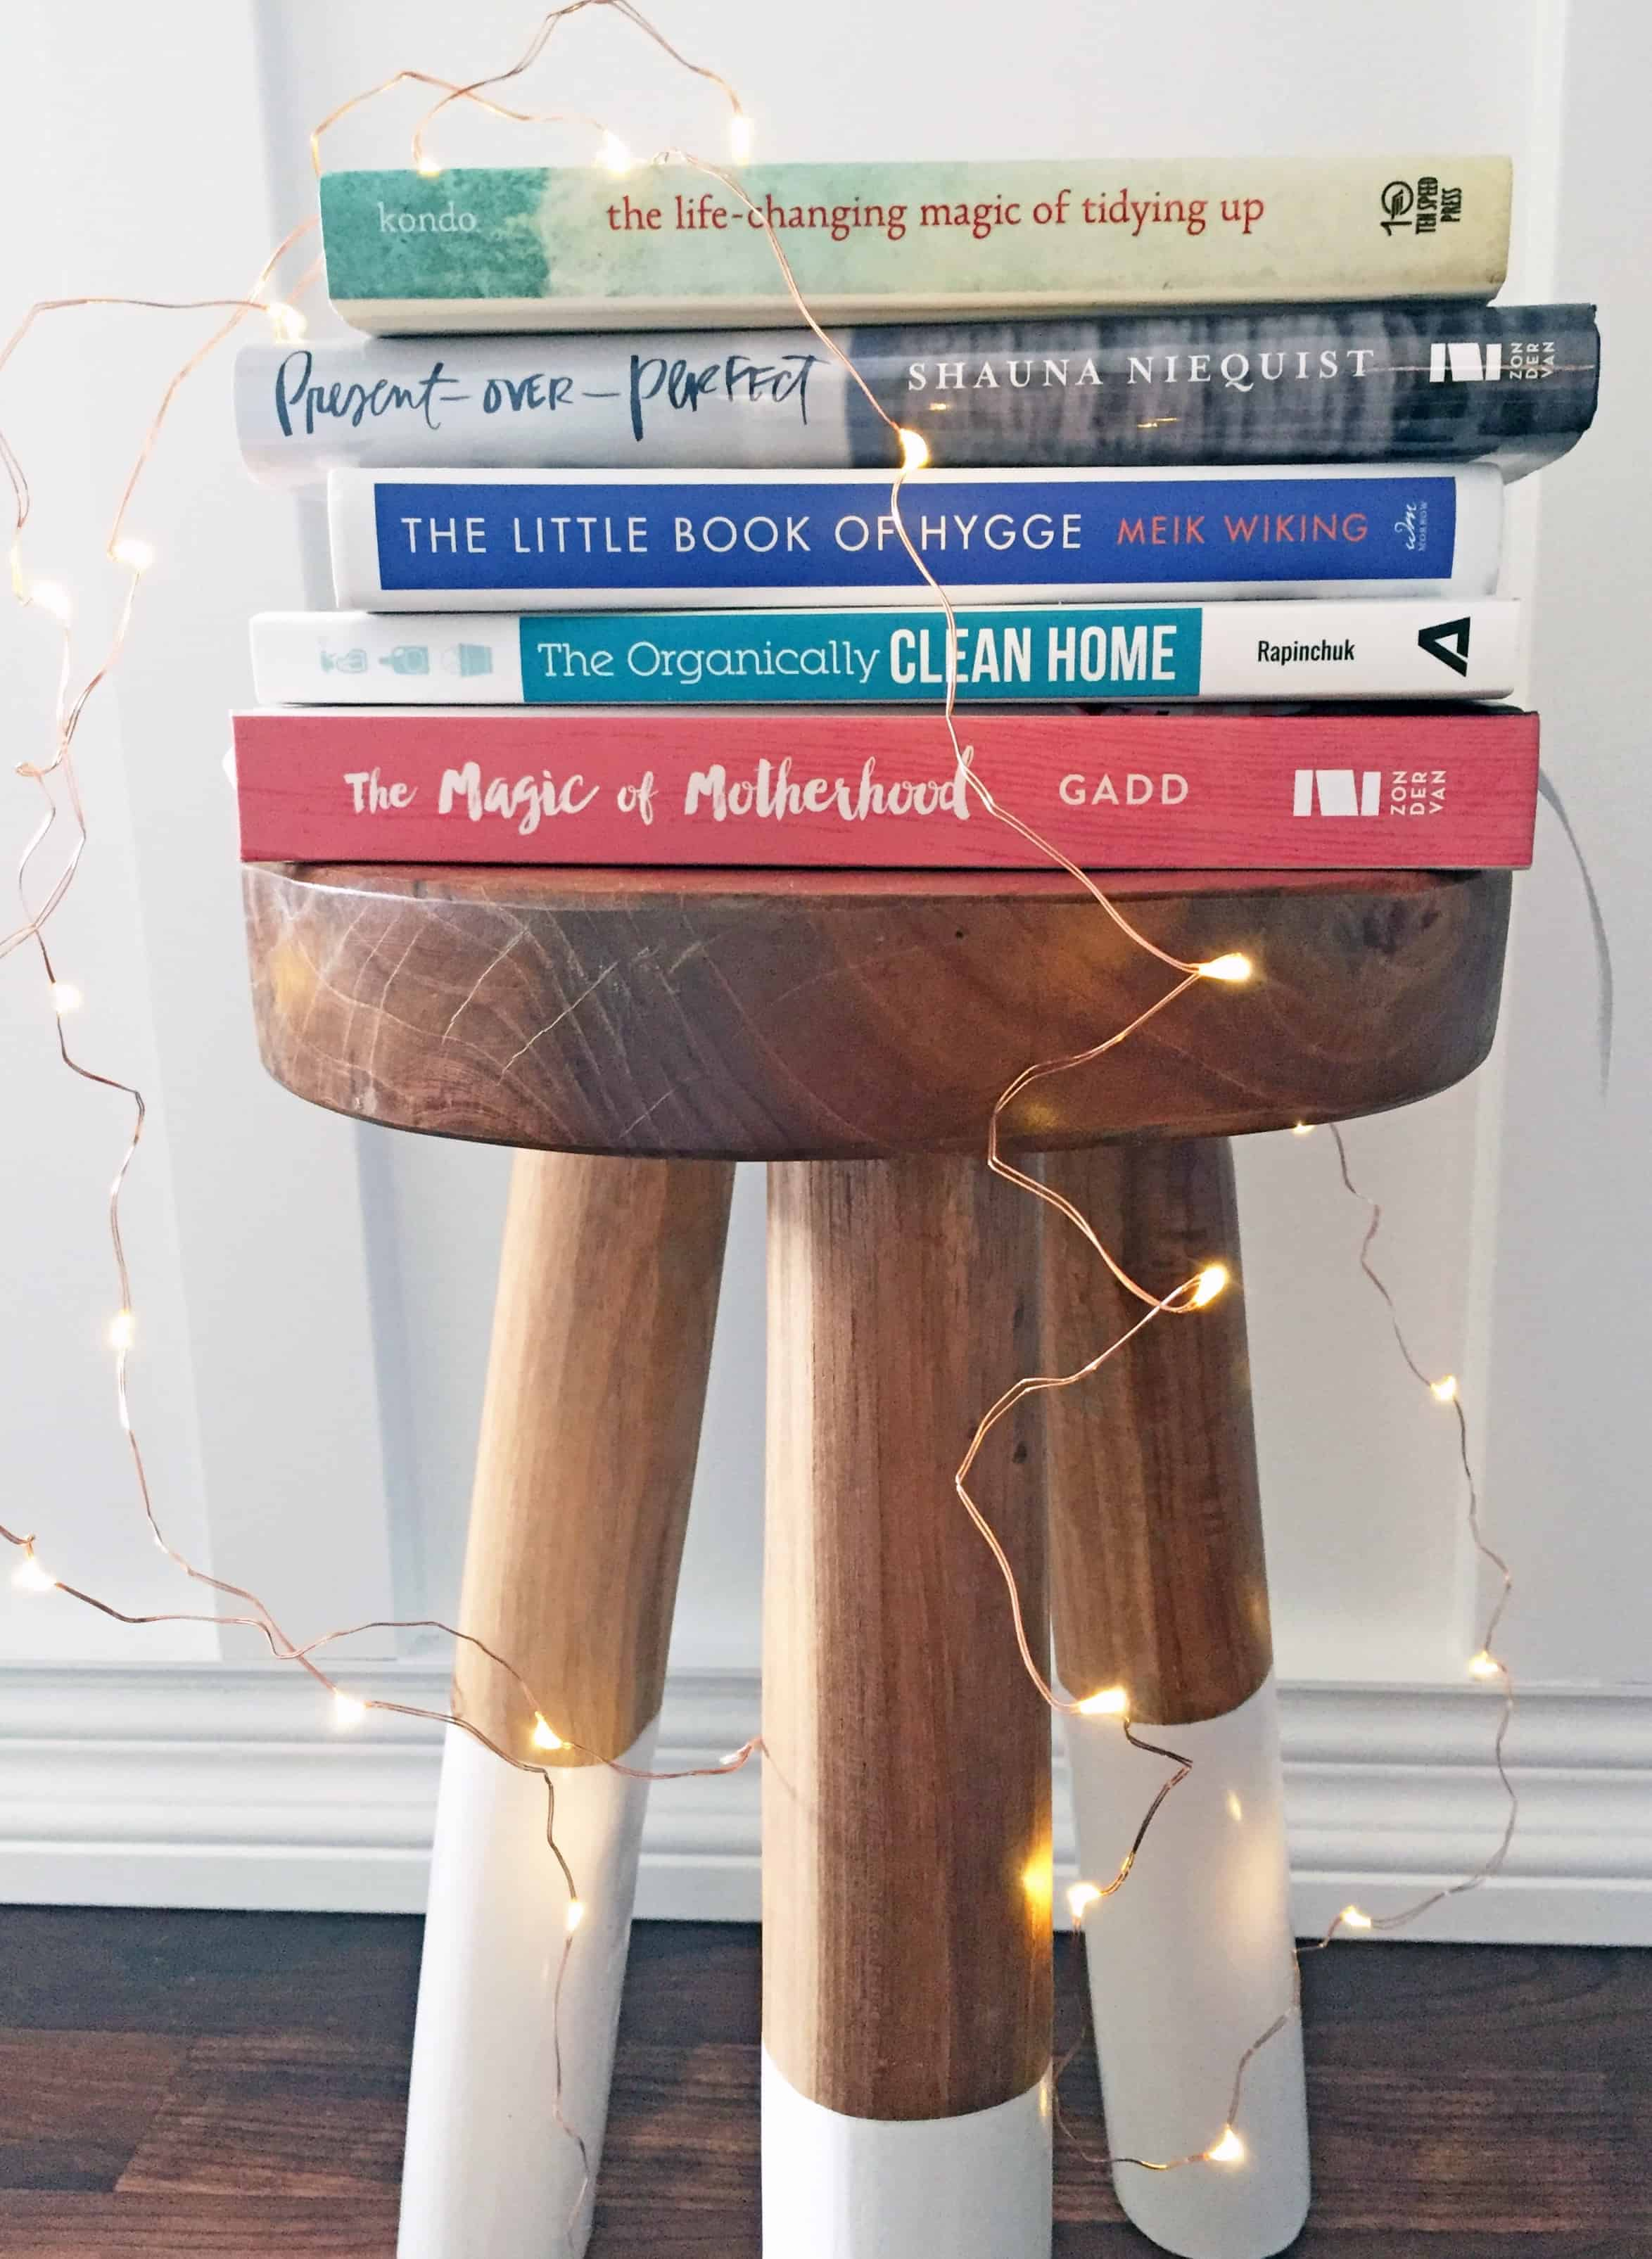 5 inspiring books for the New Year.